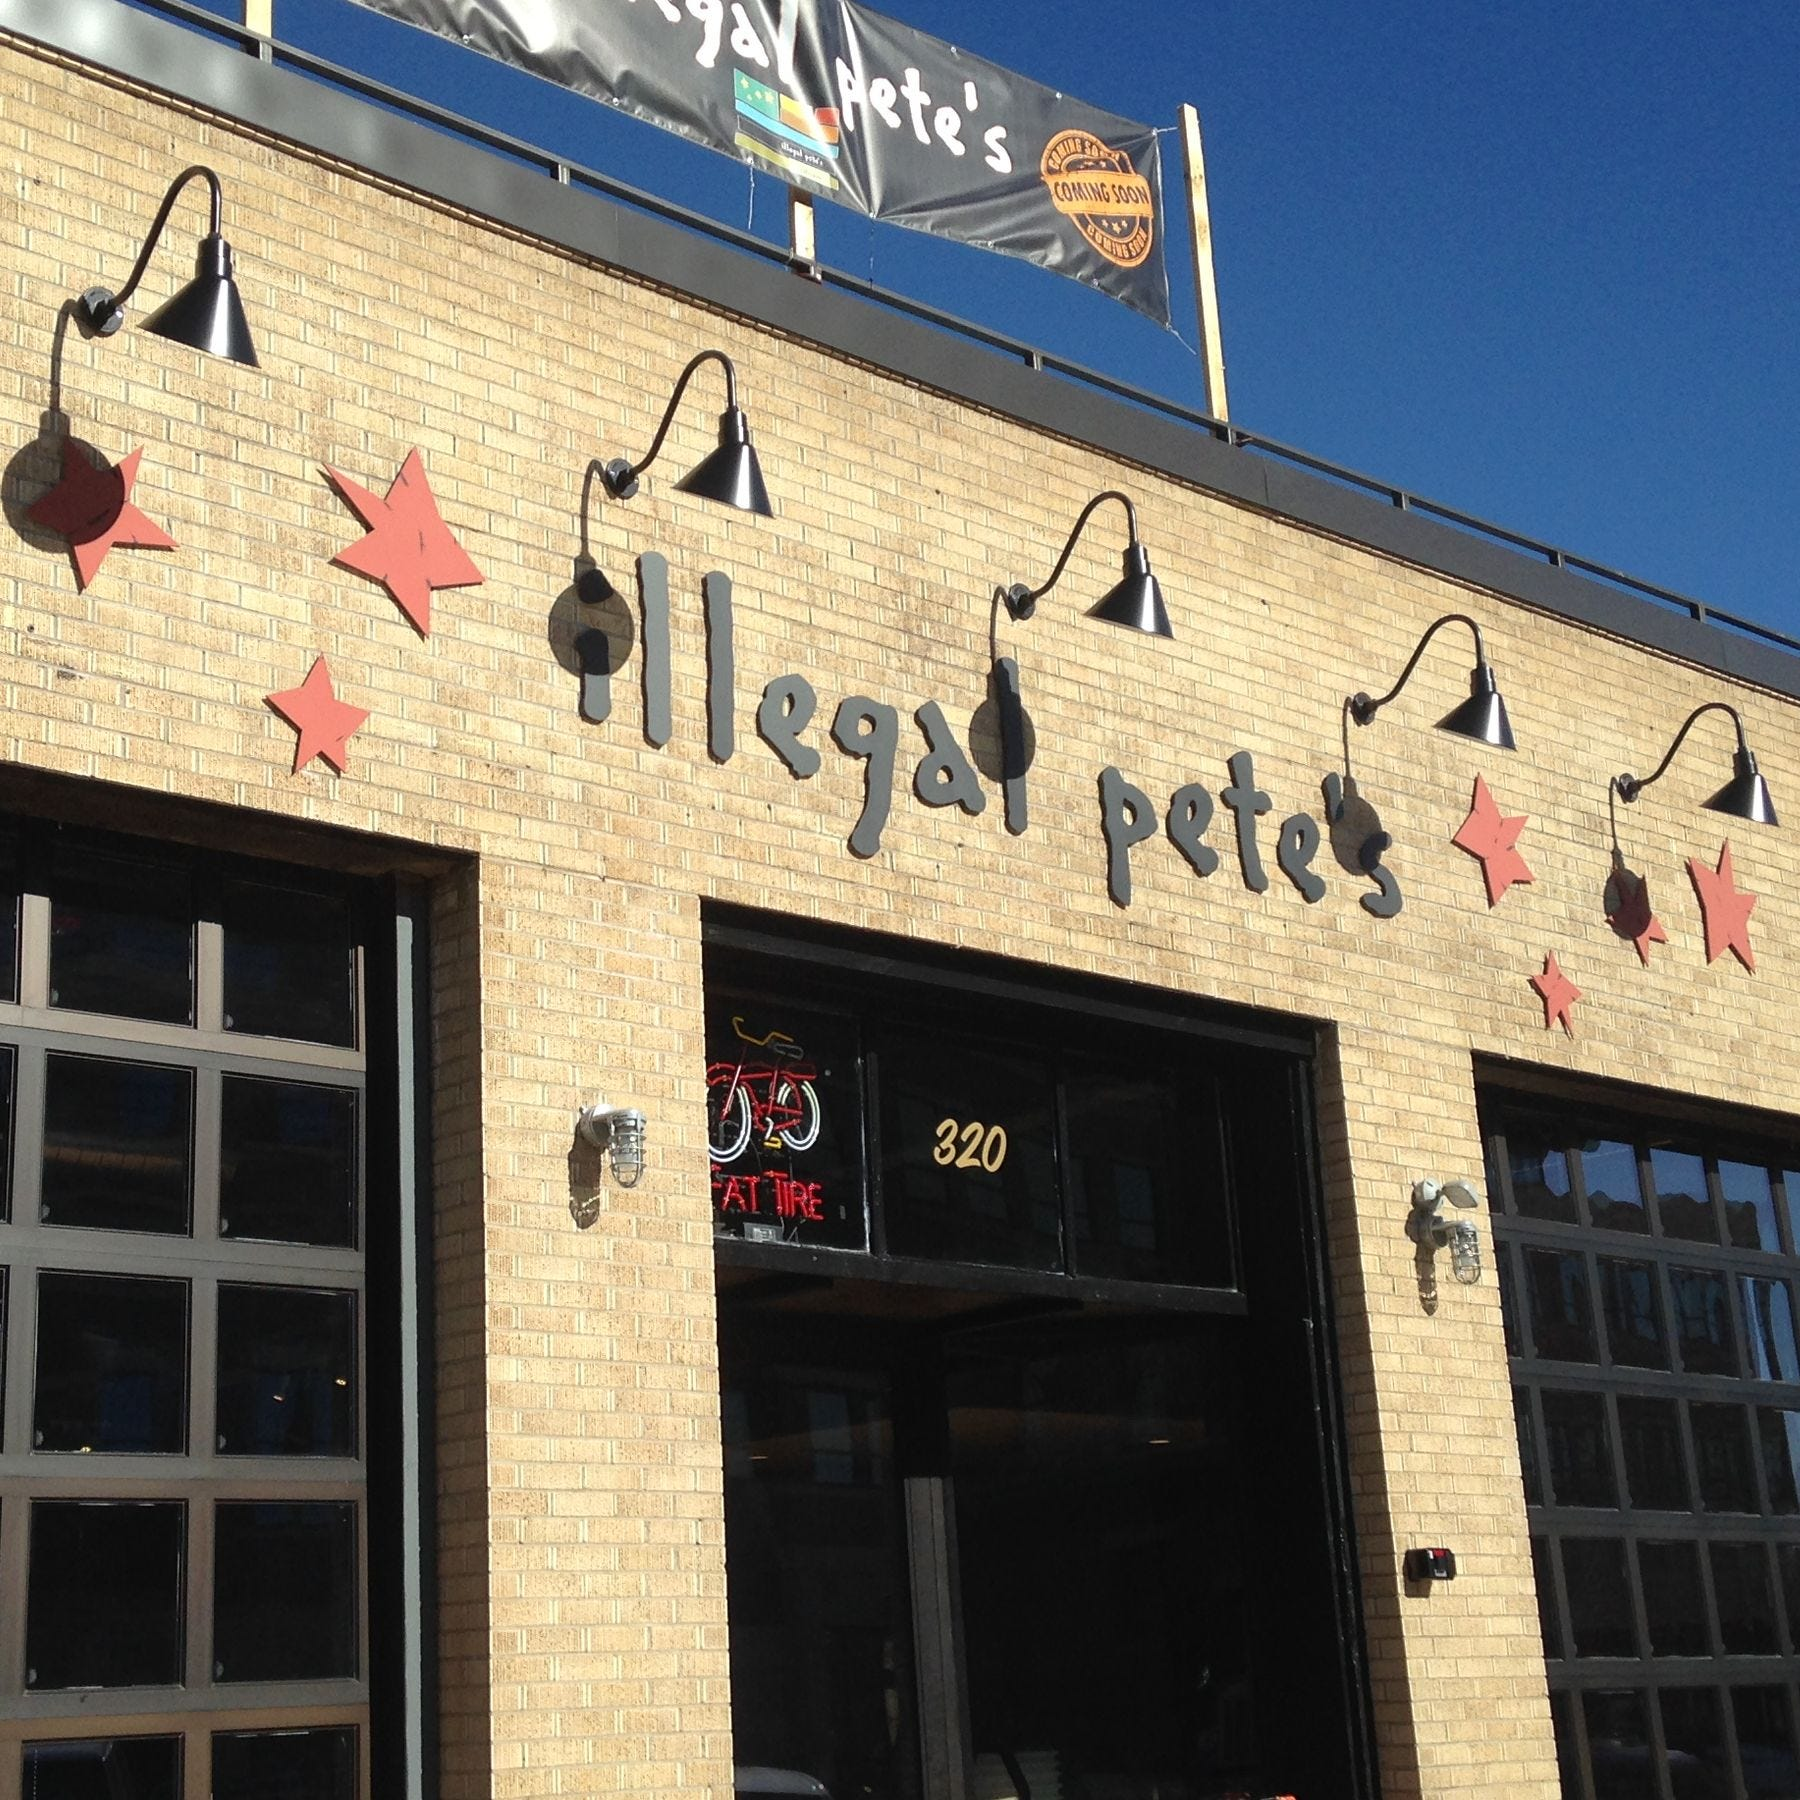 An Illegal Pete's Fort Collins, Colorado location shown here in 2014.